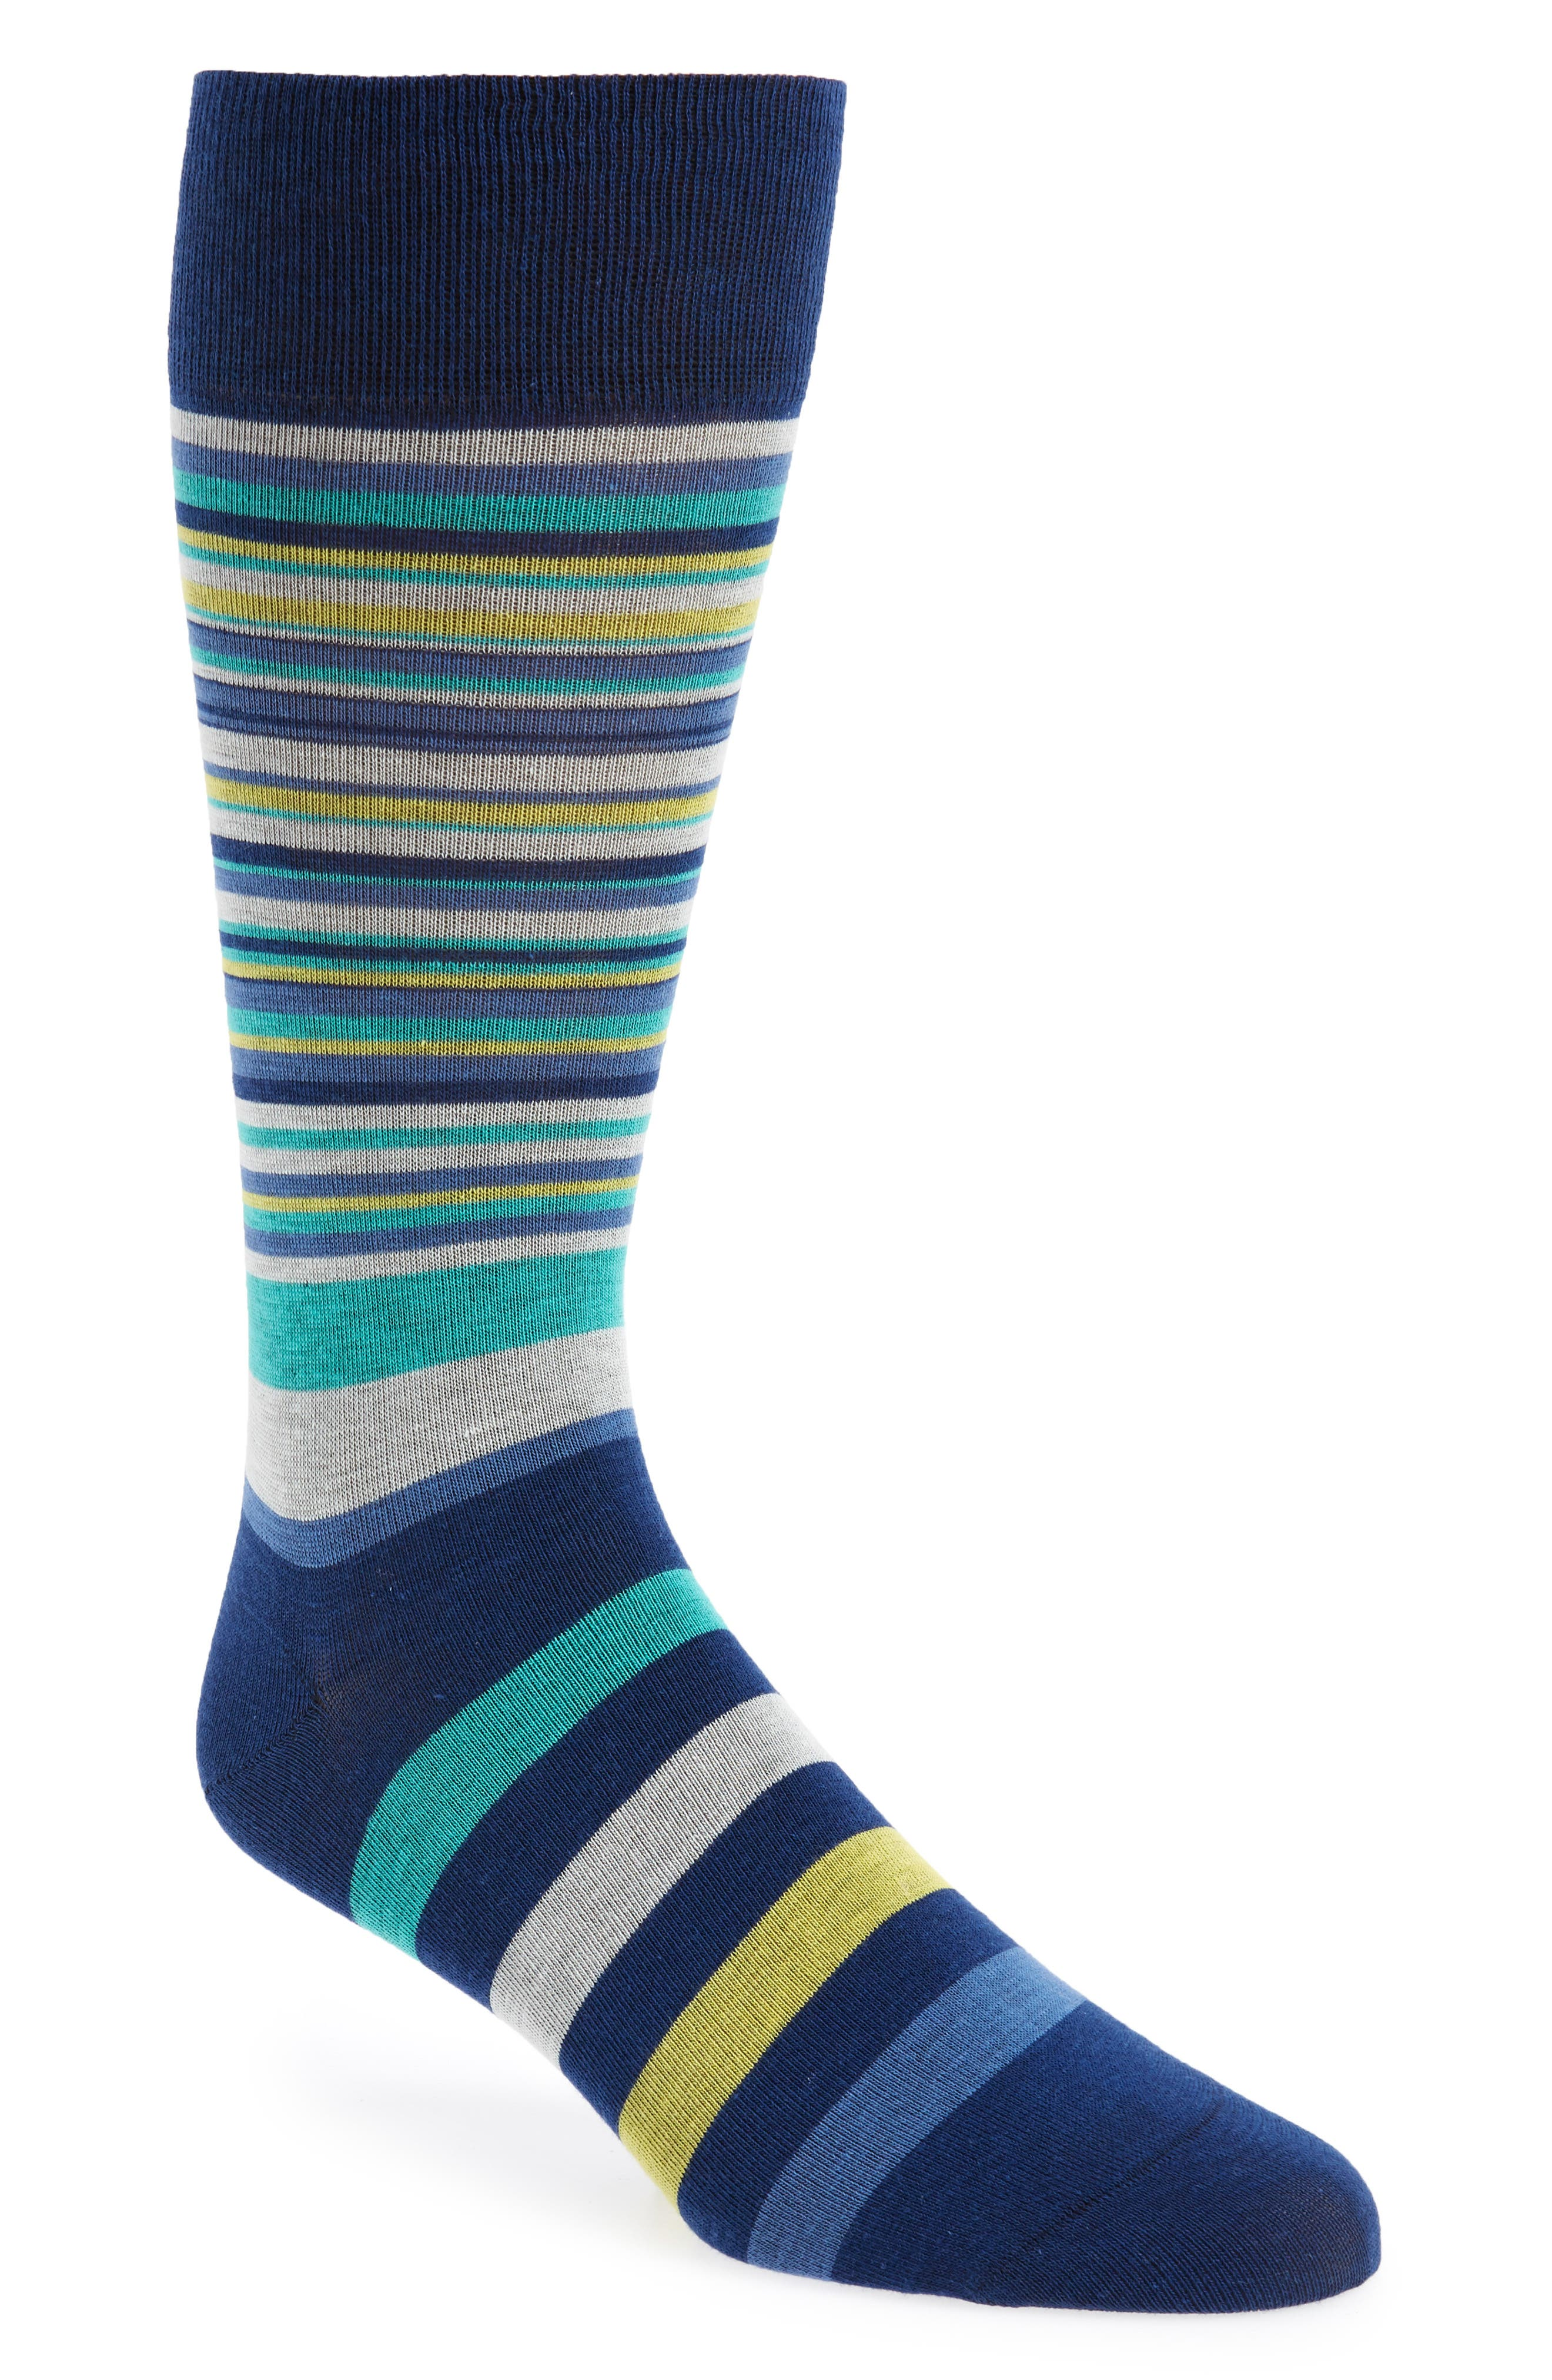 Town Stripe Crew Socks,                         Main,                         color, Navy Peony